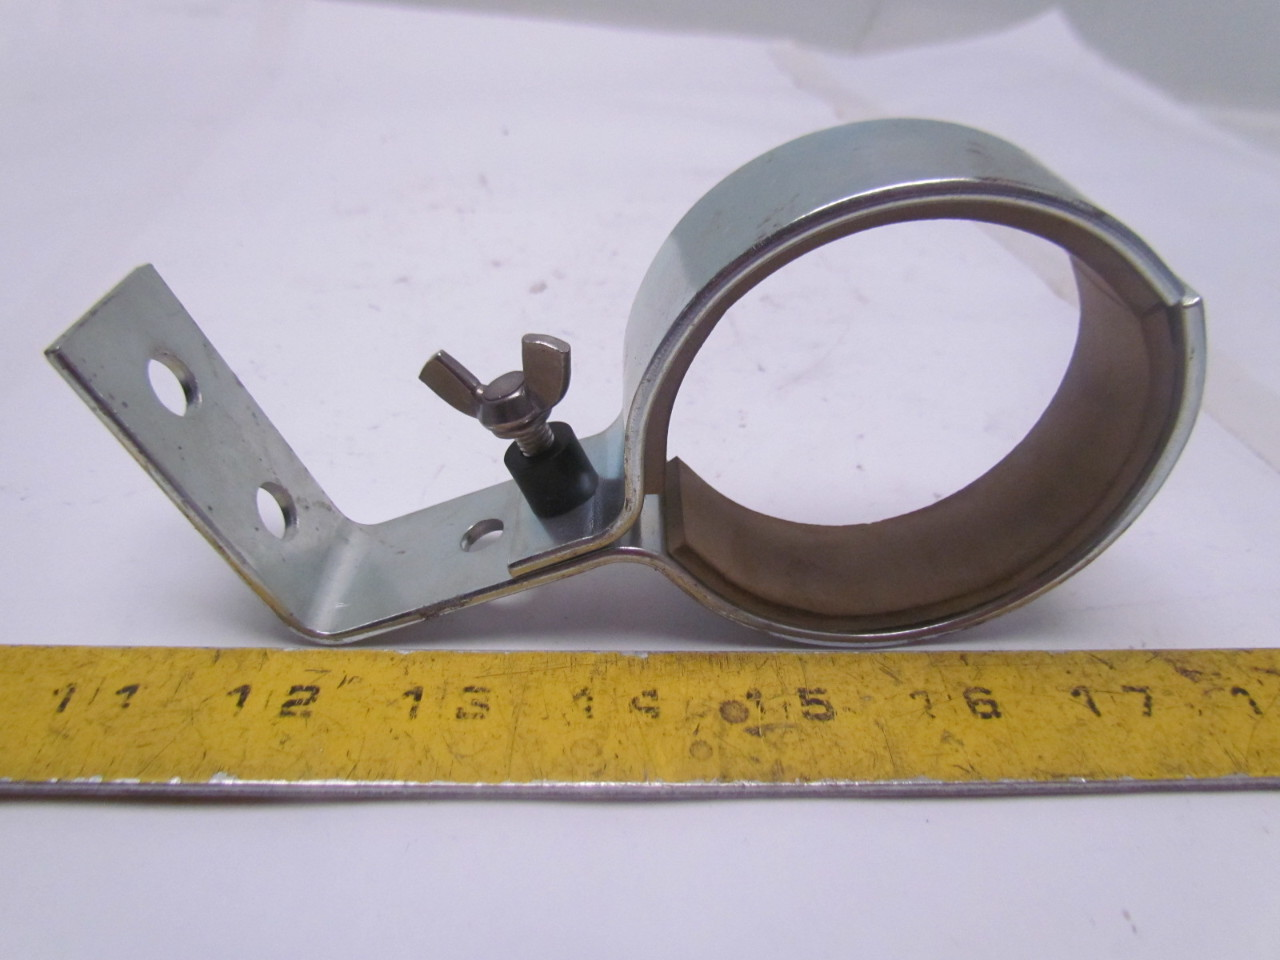 Stainless steel pipe tube clamp style hanger for od